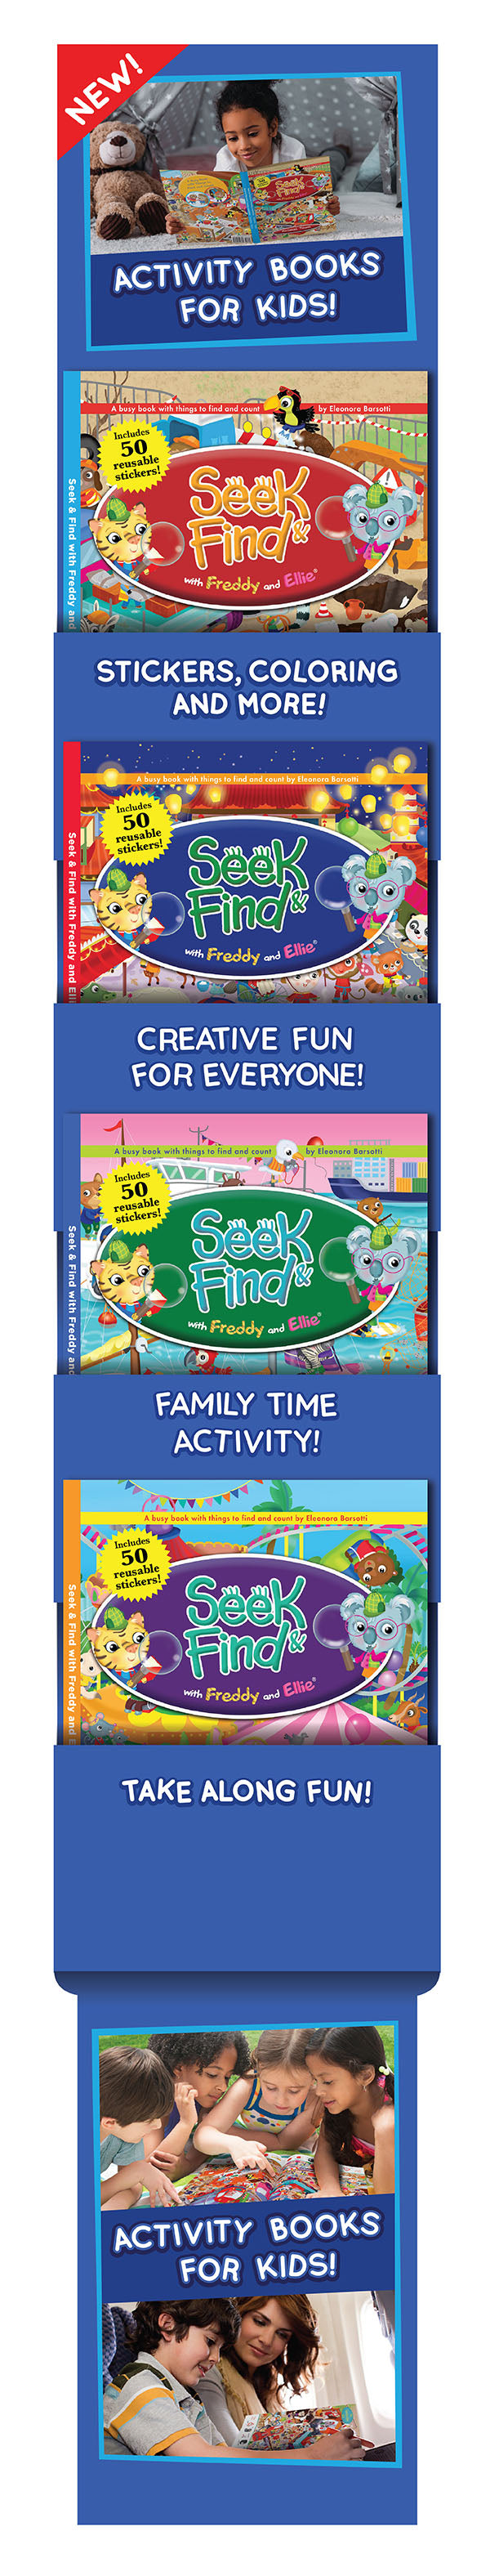 Book Display - Activity Books for Kids